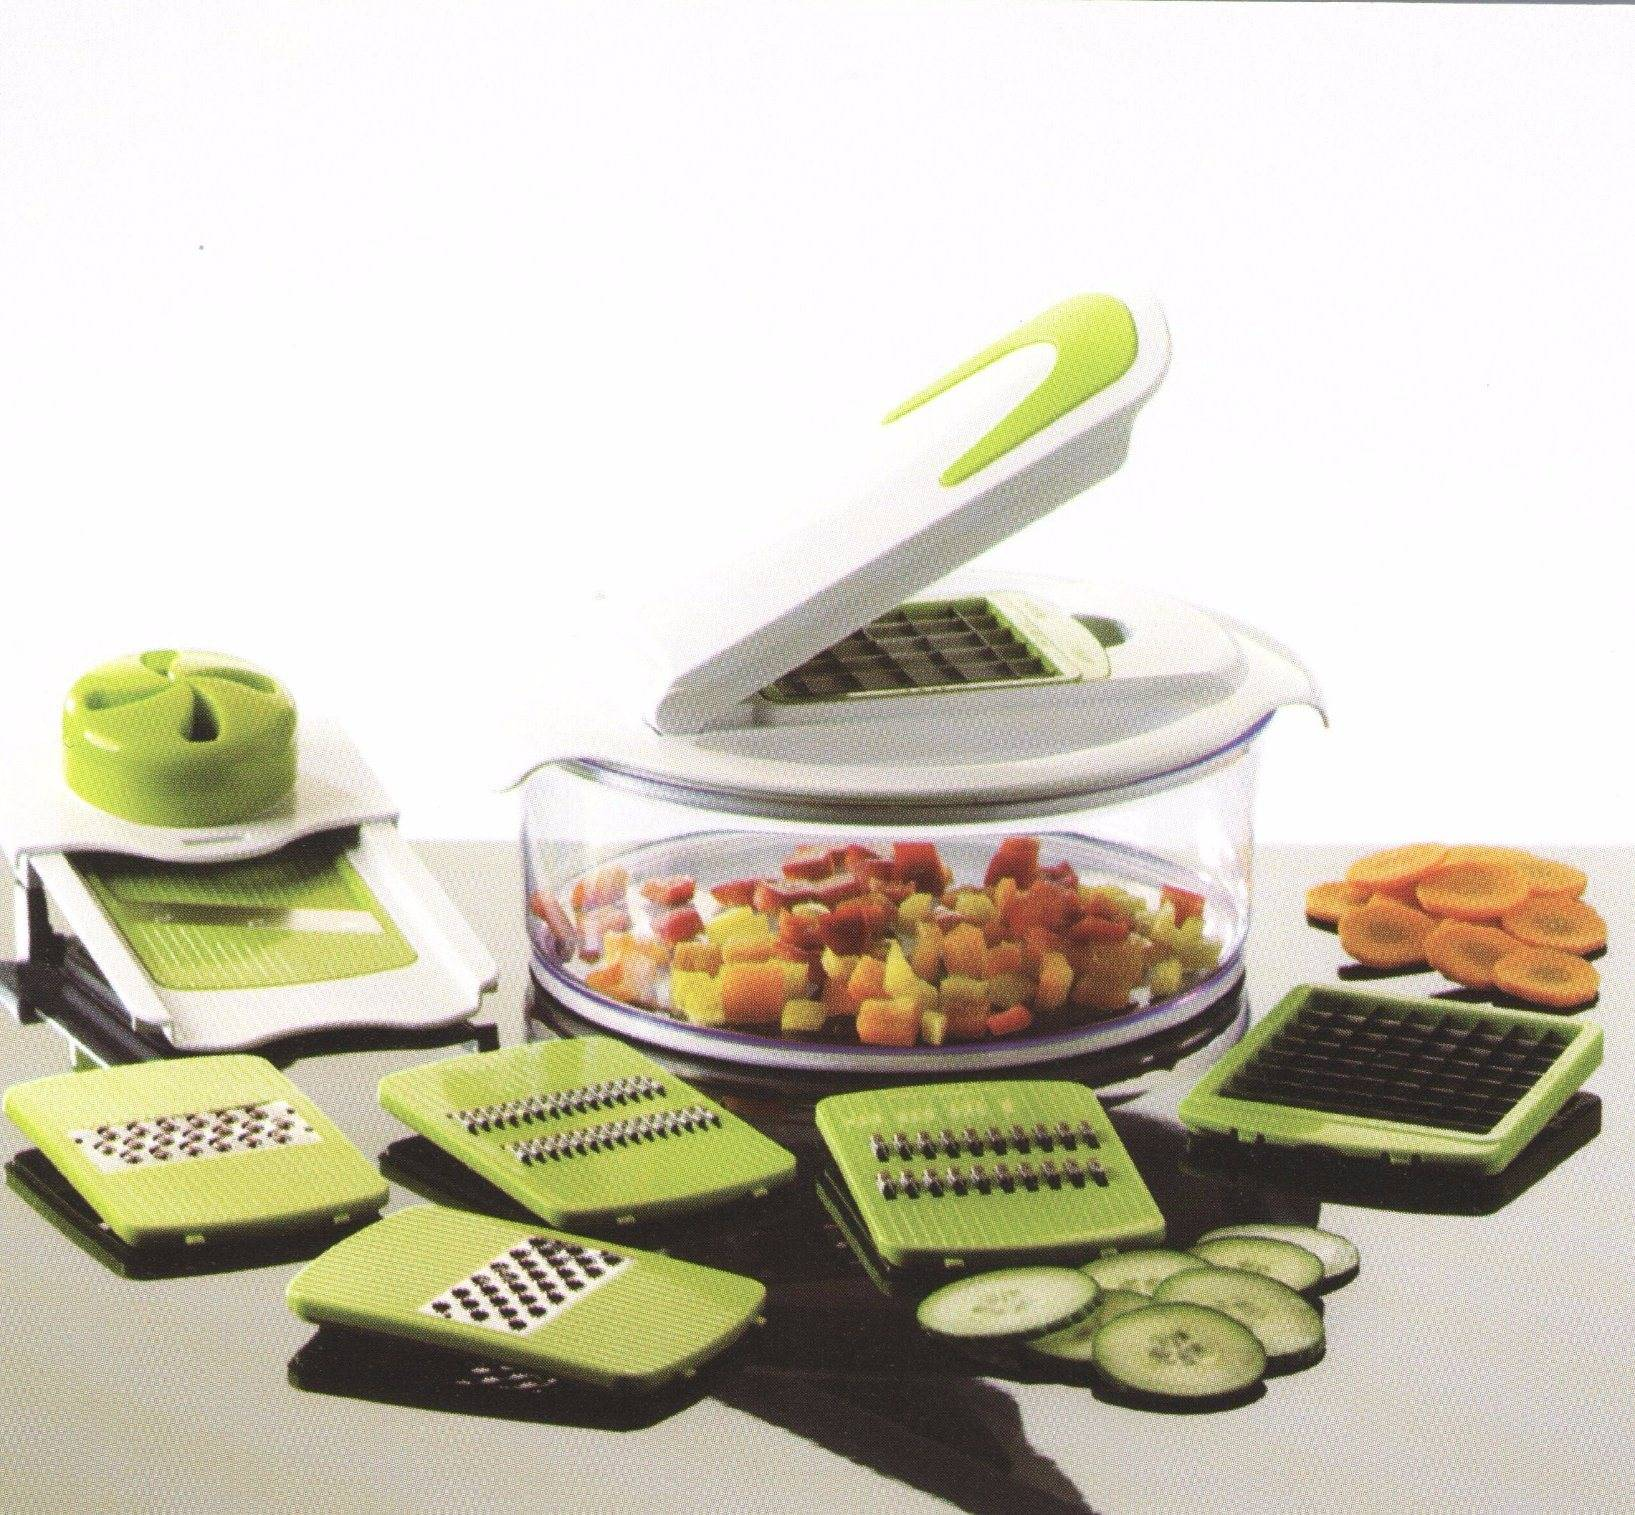 Plastic Vegetable Chopper Dice and Slice Cutting Food Machine Cg068